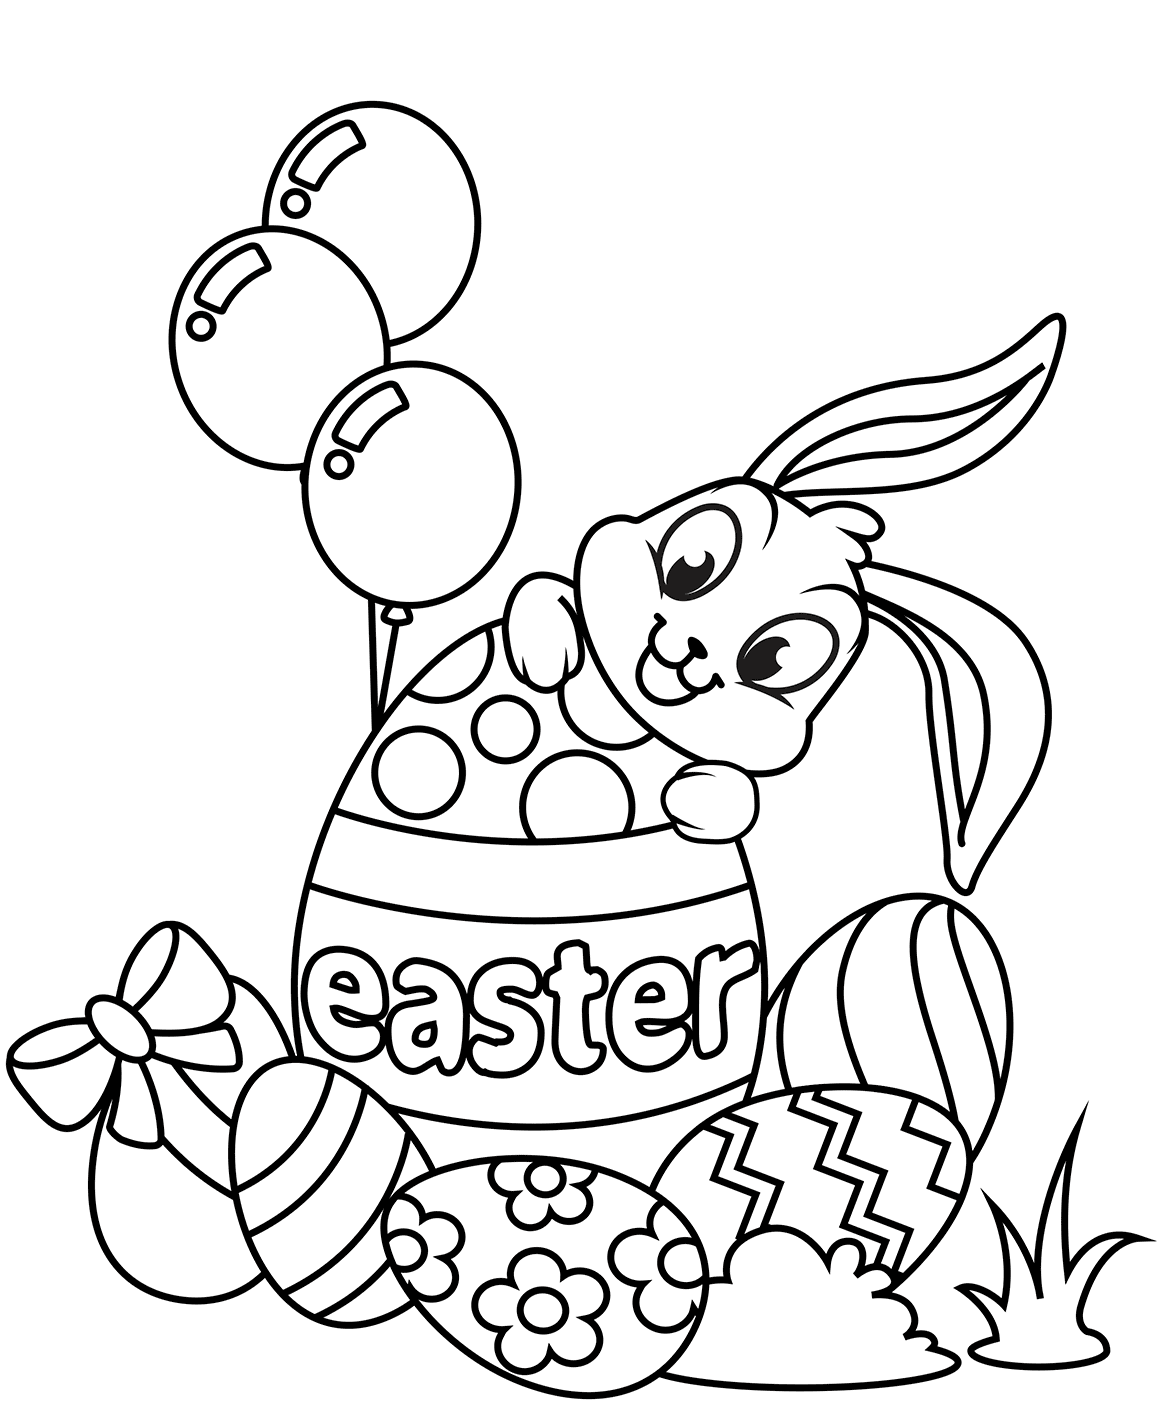 colouring pages of rabbit top 15 free printable bunny coloring pages online of pages rabbit colouring